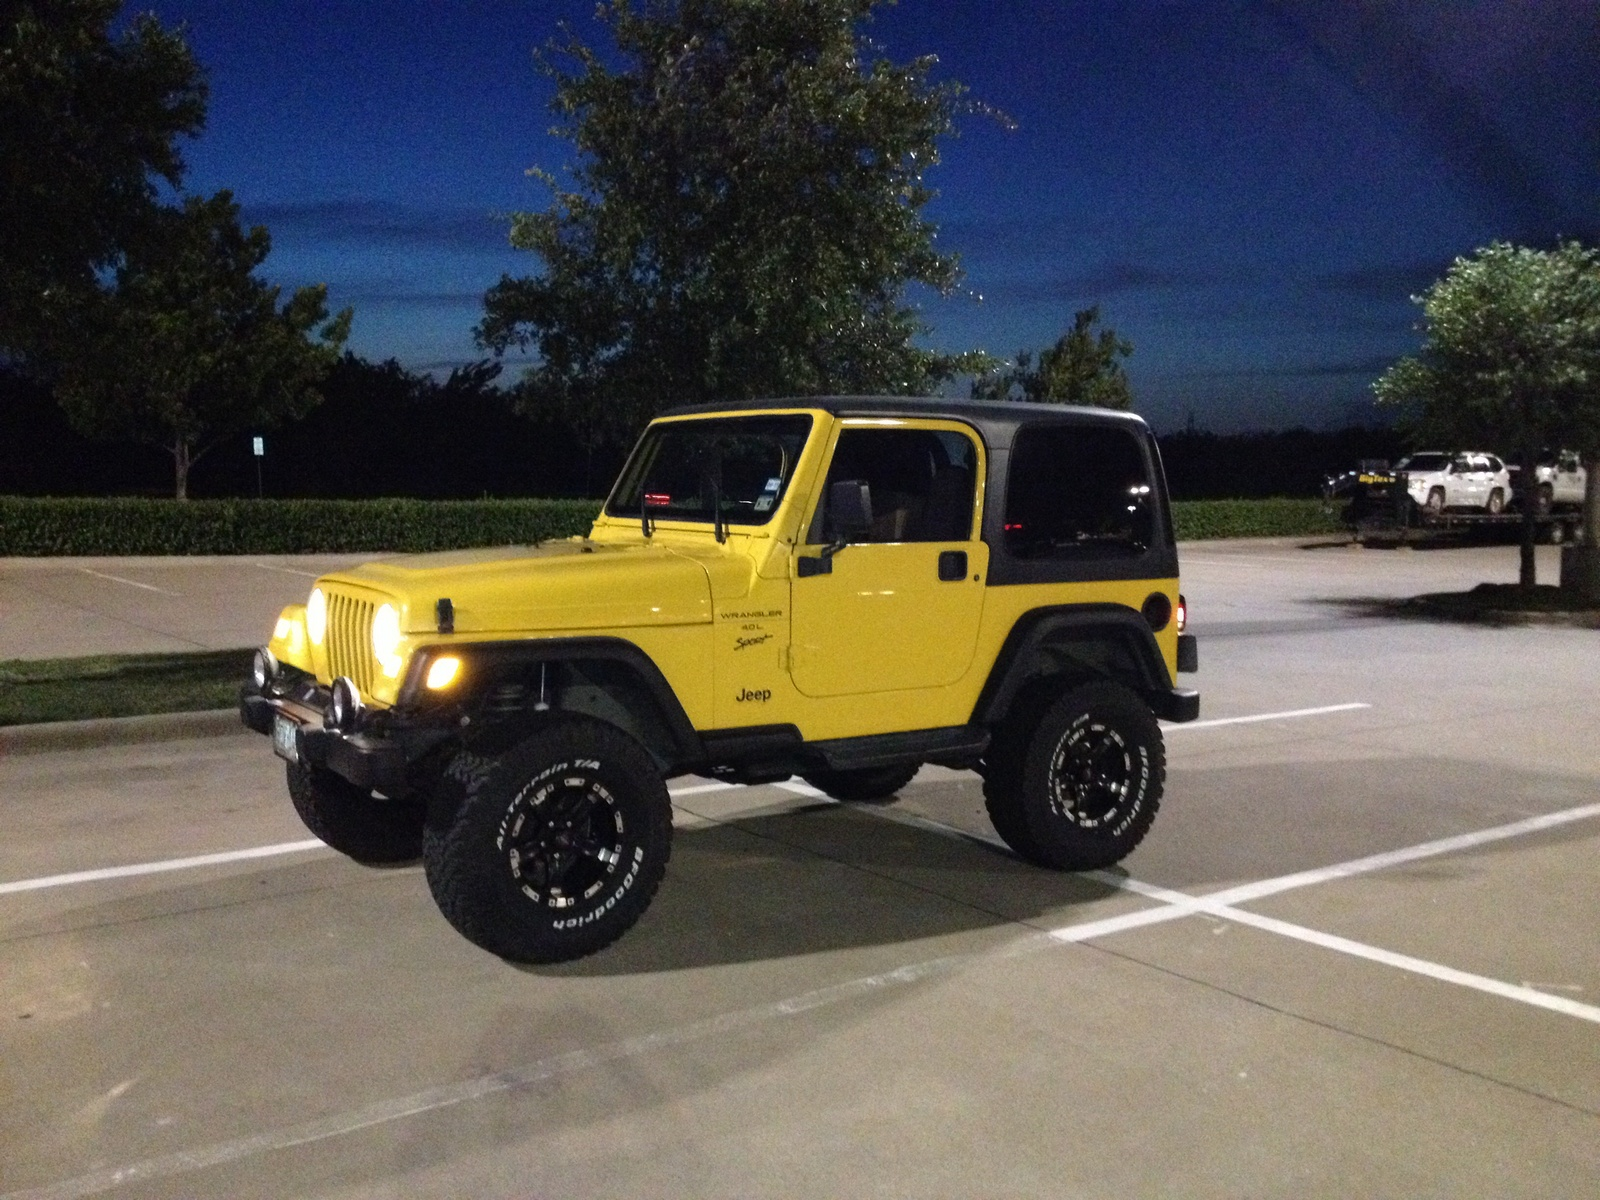 Jeep s 2000 wrangler is available in three models se sport and